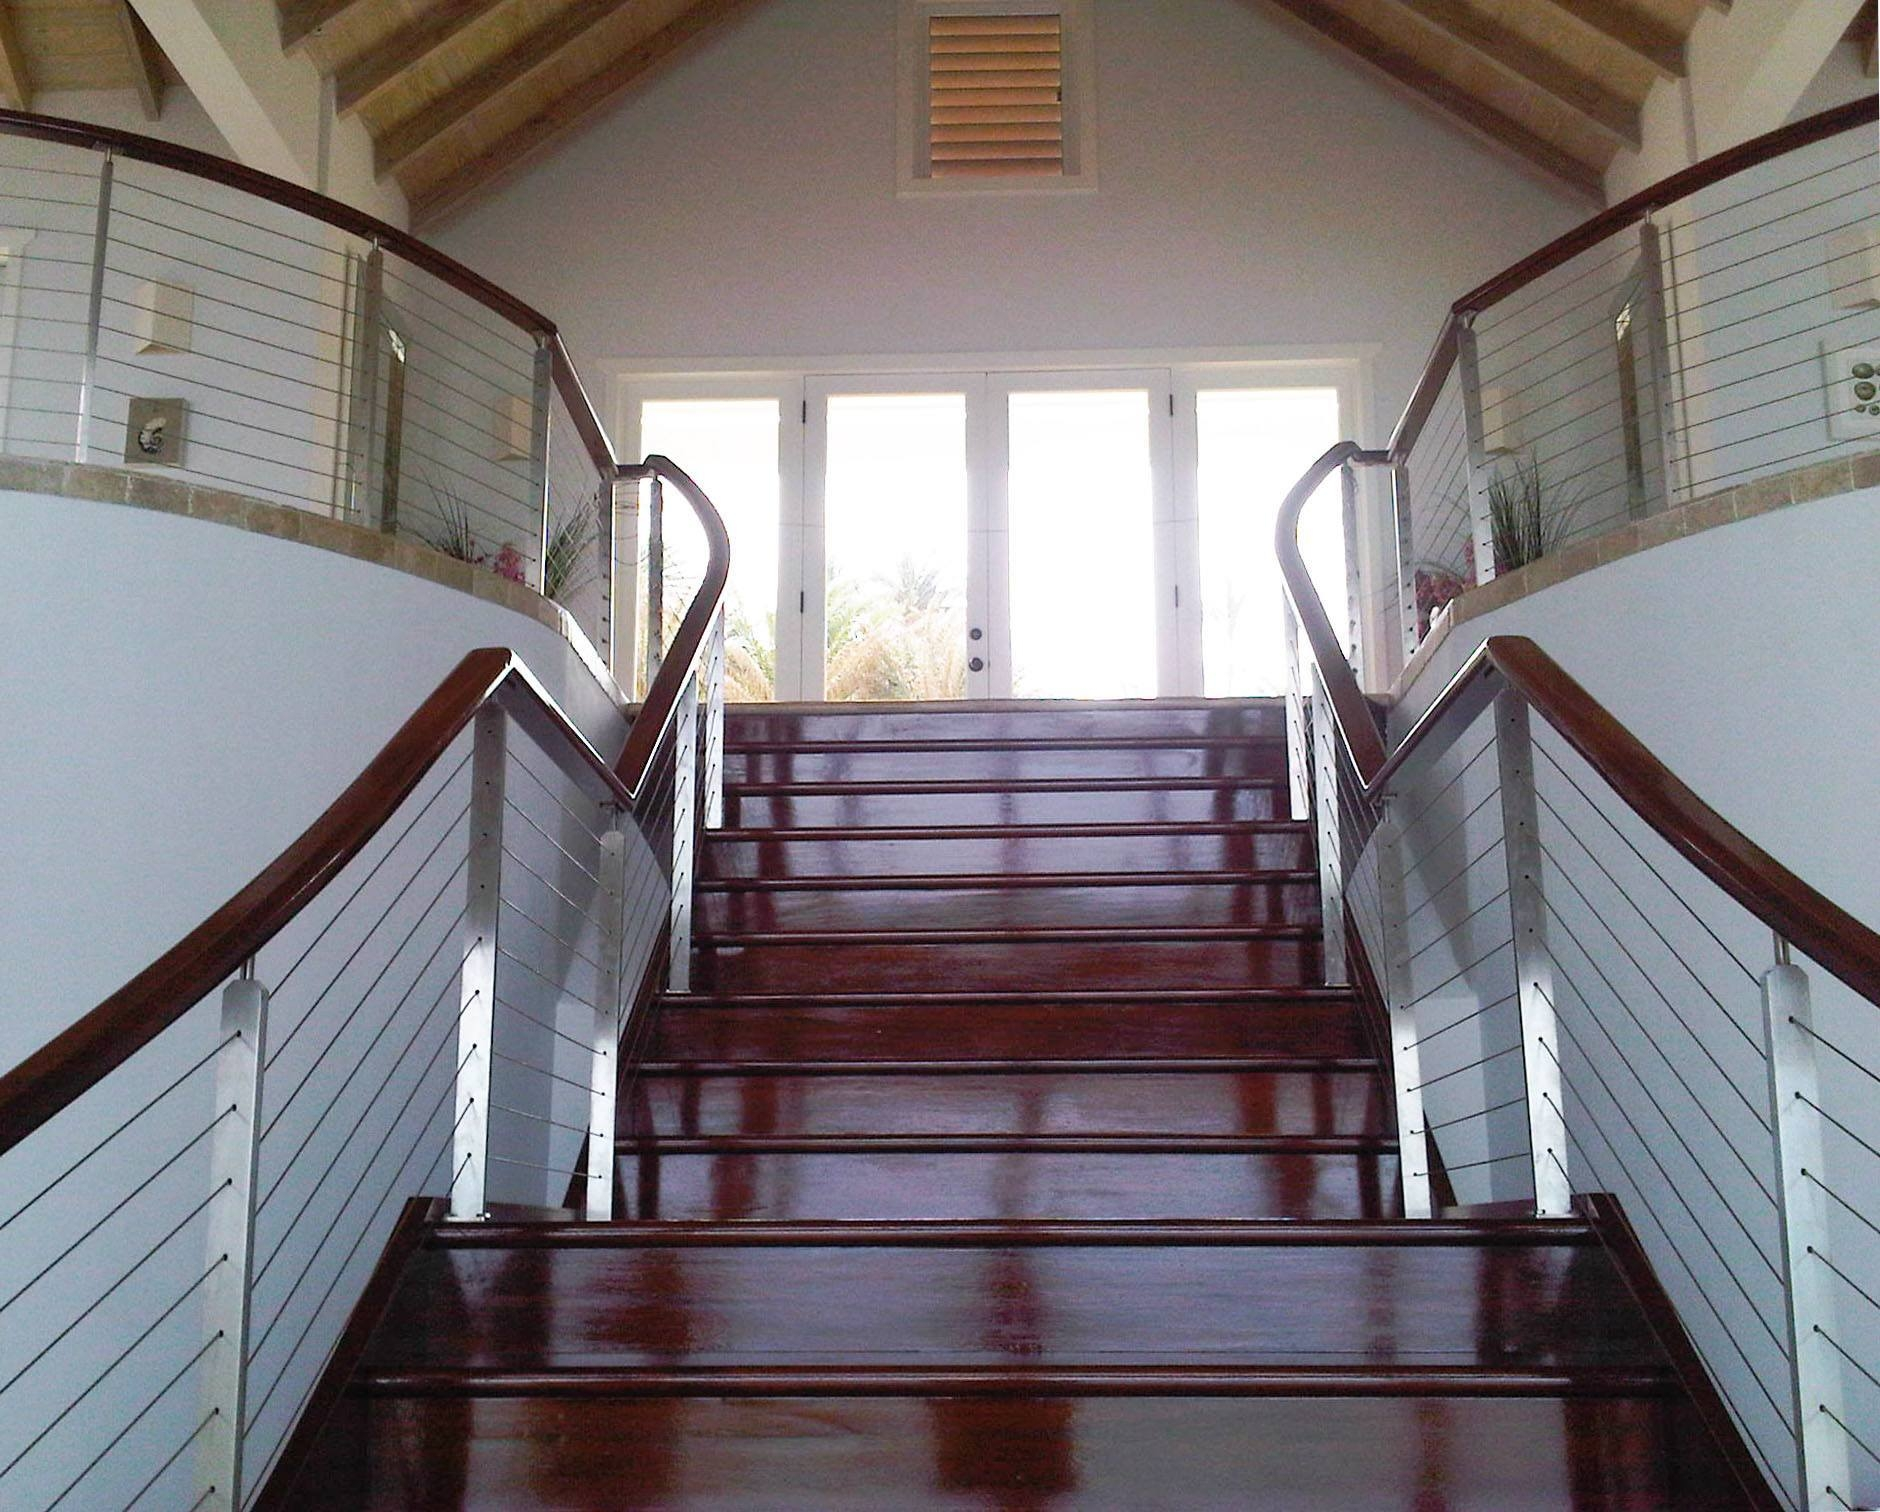 Stainless Steel Stair Railing Long Bay Antigua Keuka Studios   Ss Handrails For Stairs   Flat Steel   Mild Steel Handrail   Metal   Steel Railing   Commercial Building